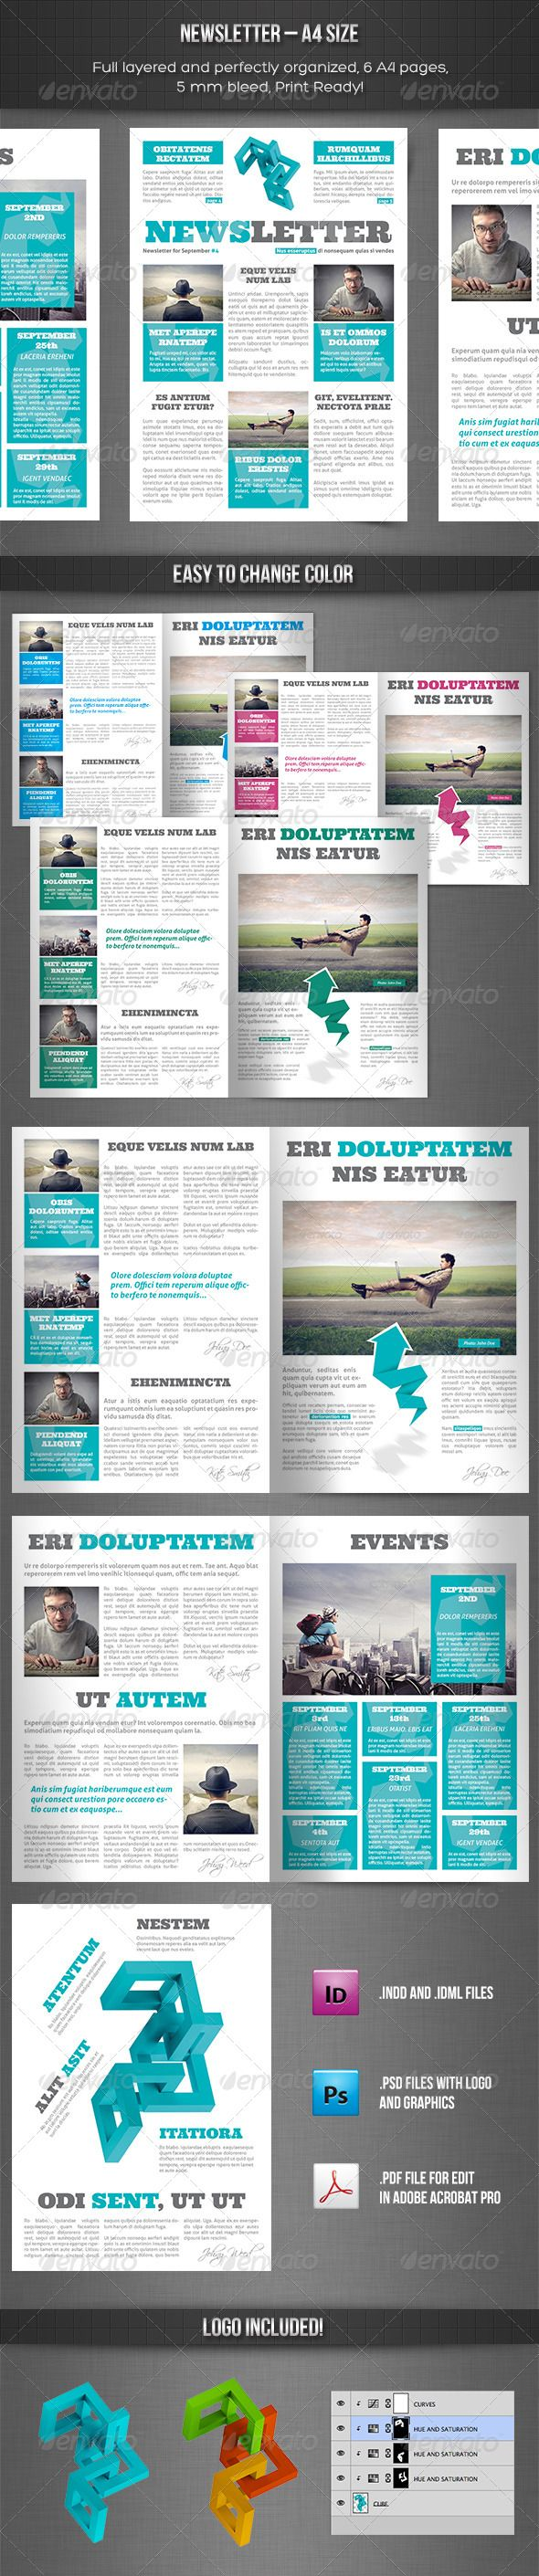 Newsletter Design Ideas newsletter view all designs Graphicriver Newsletter Vol 10 Indesign Template 5026752